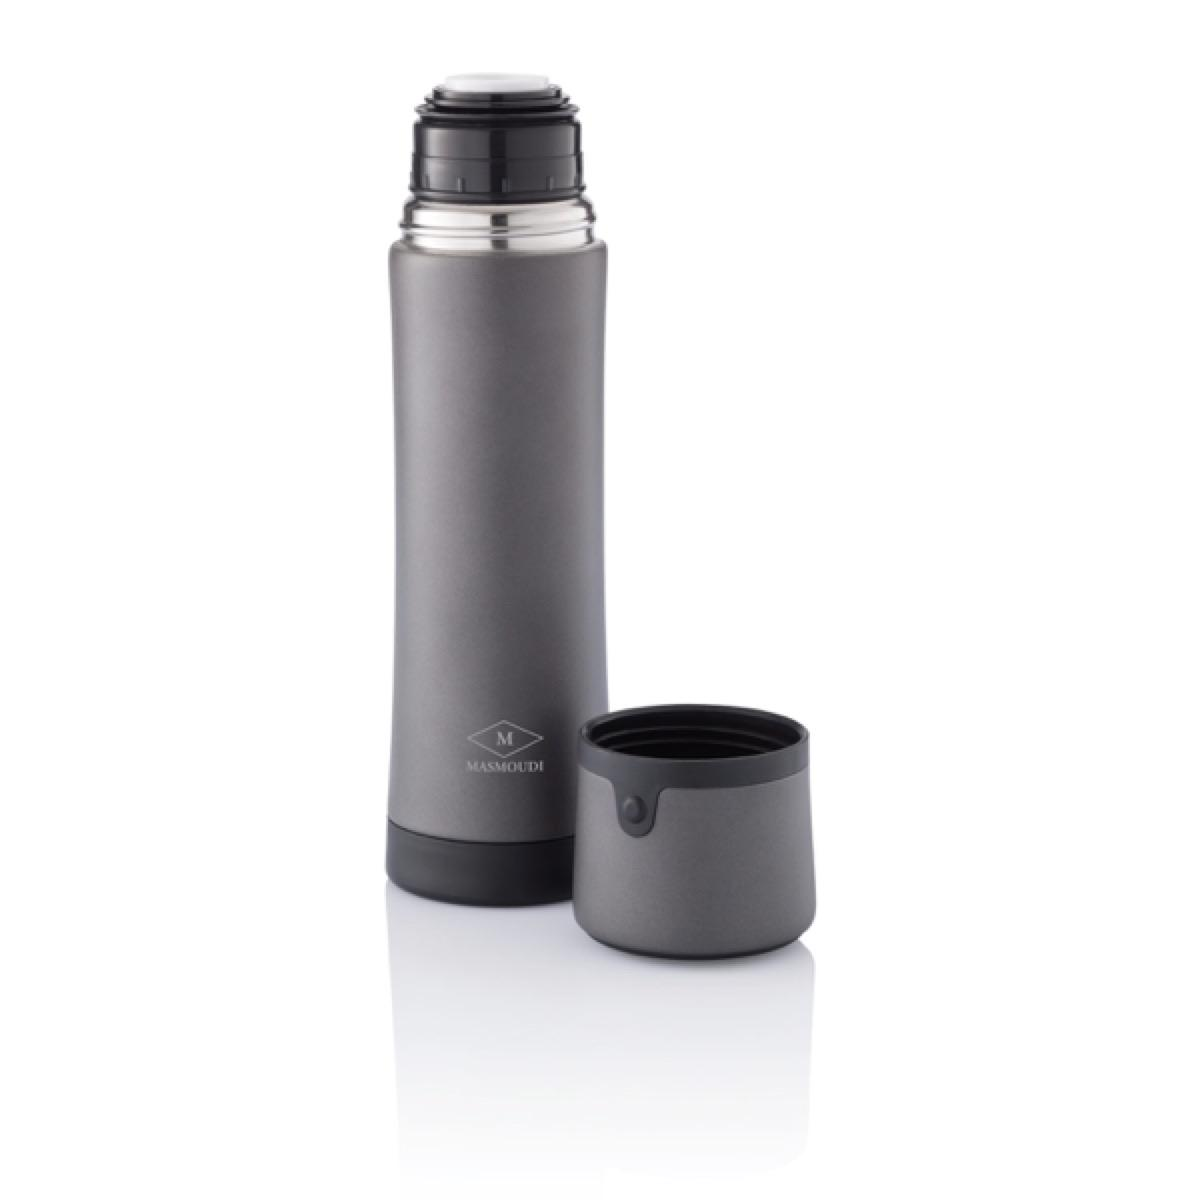 Swiss Peak Vacuum Flask - Includes a 1 Colour Print, From $22.0